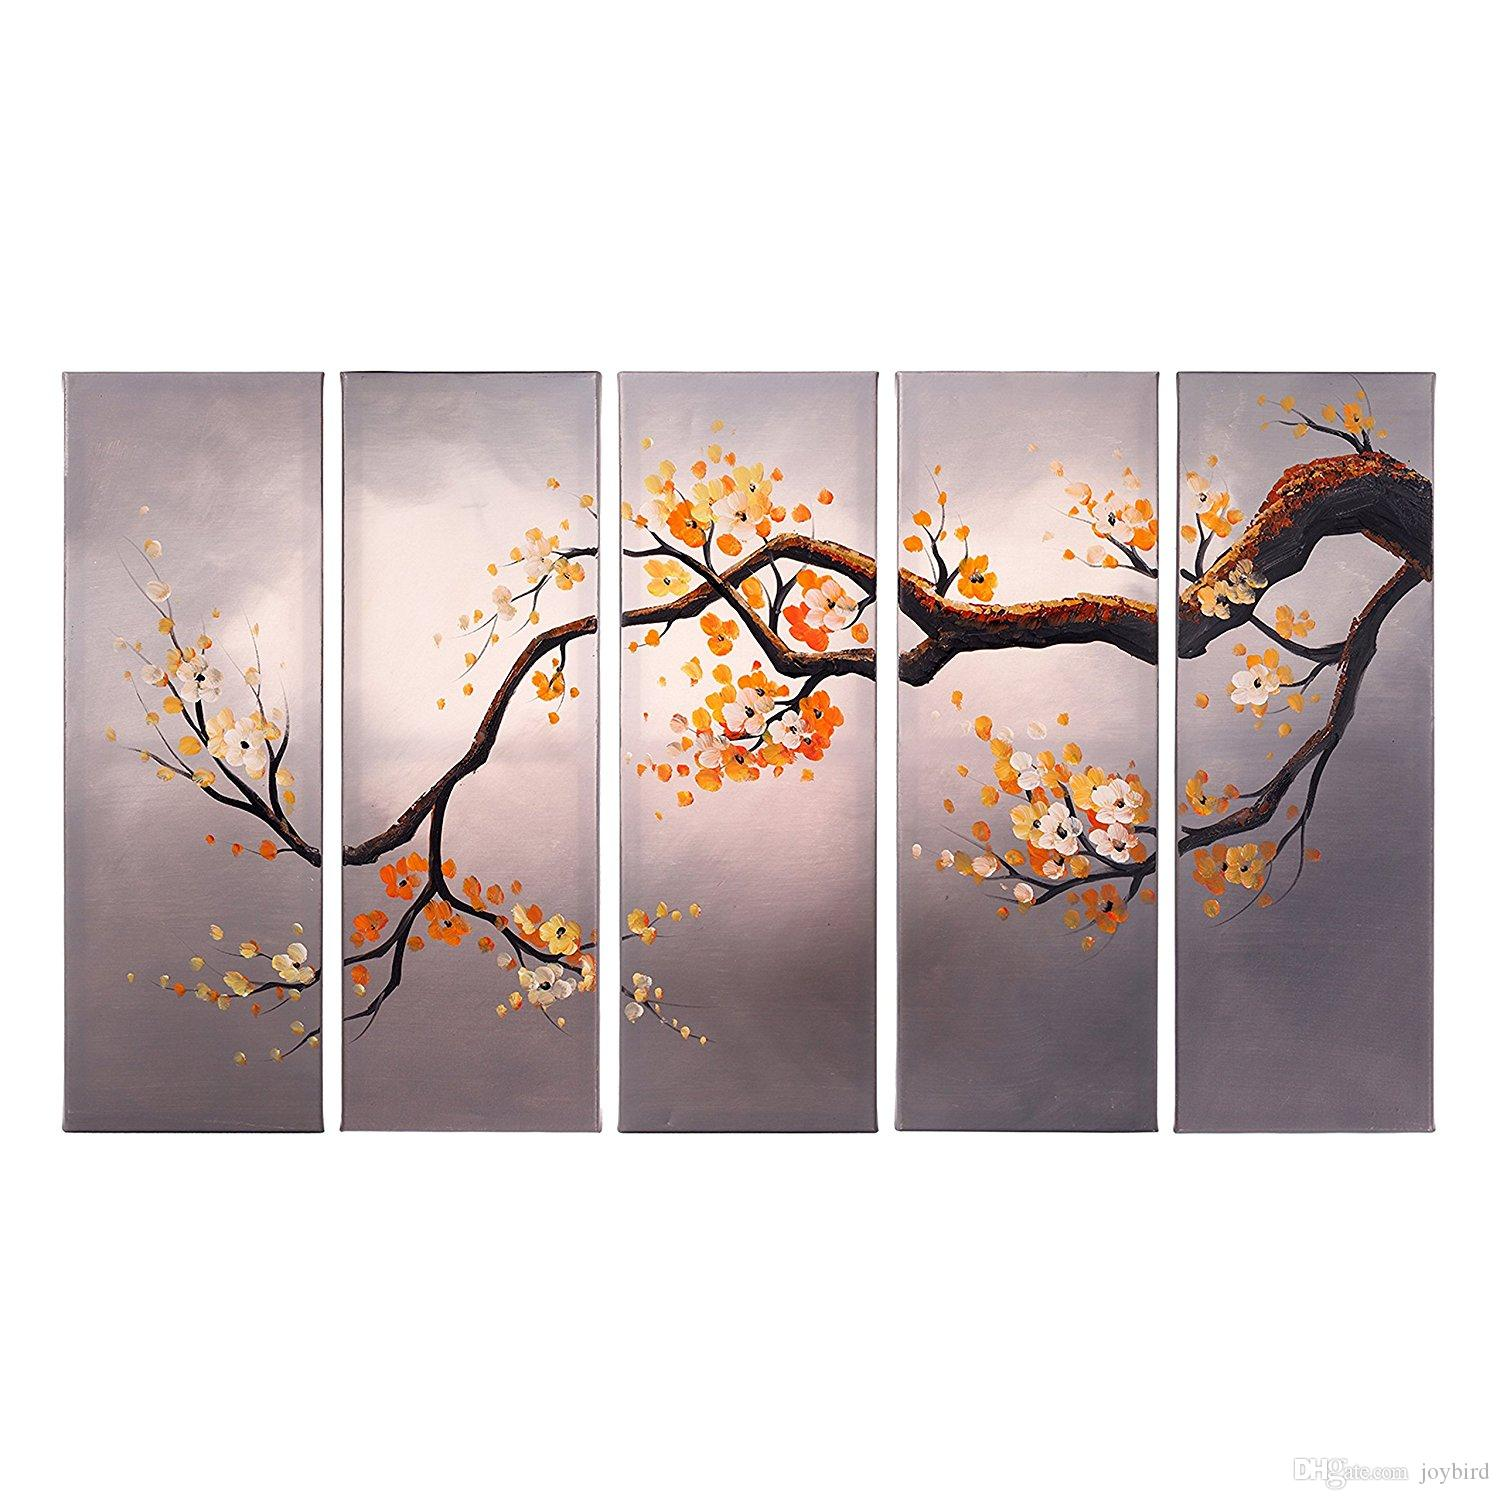 Modern artwork wall decor cherry blossom painting home decoration modern artwork wall decor cherry blossom painting home decoration flower art decor wood frame inside ready to hang flower wall decor canvas wall painting amipublicfo Image collections